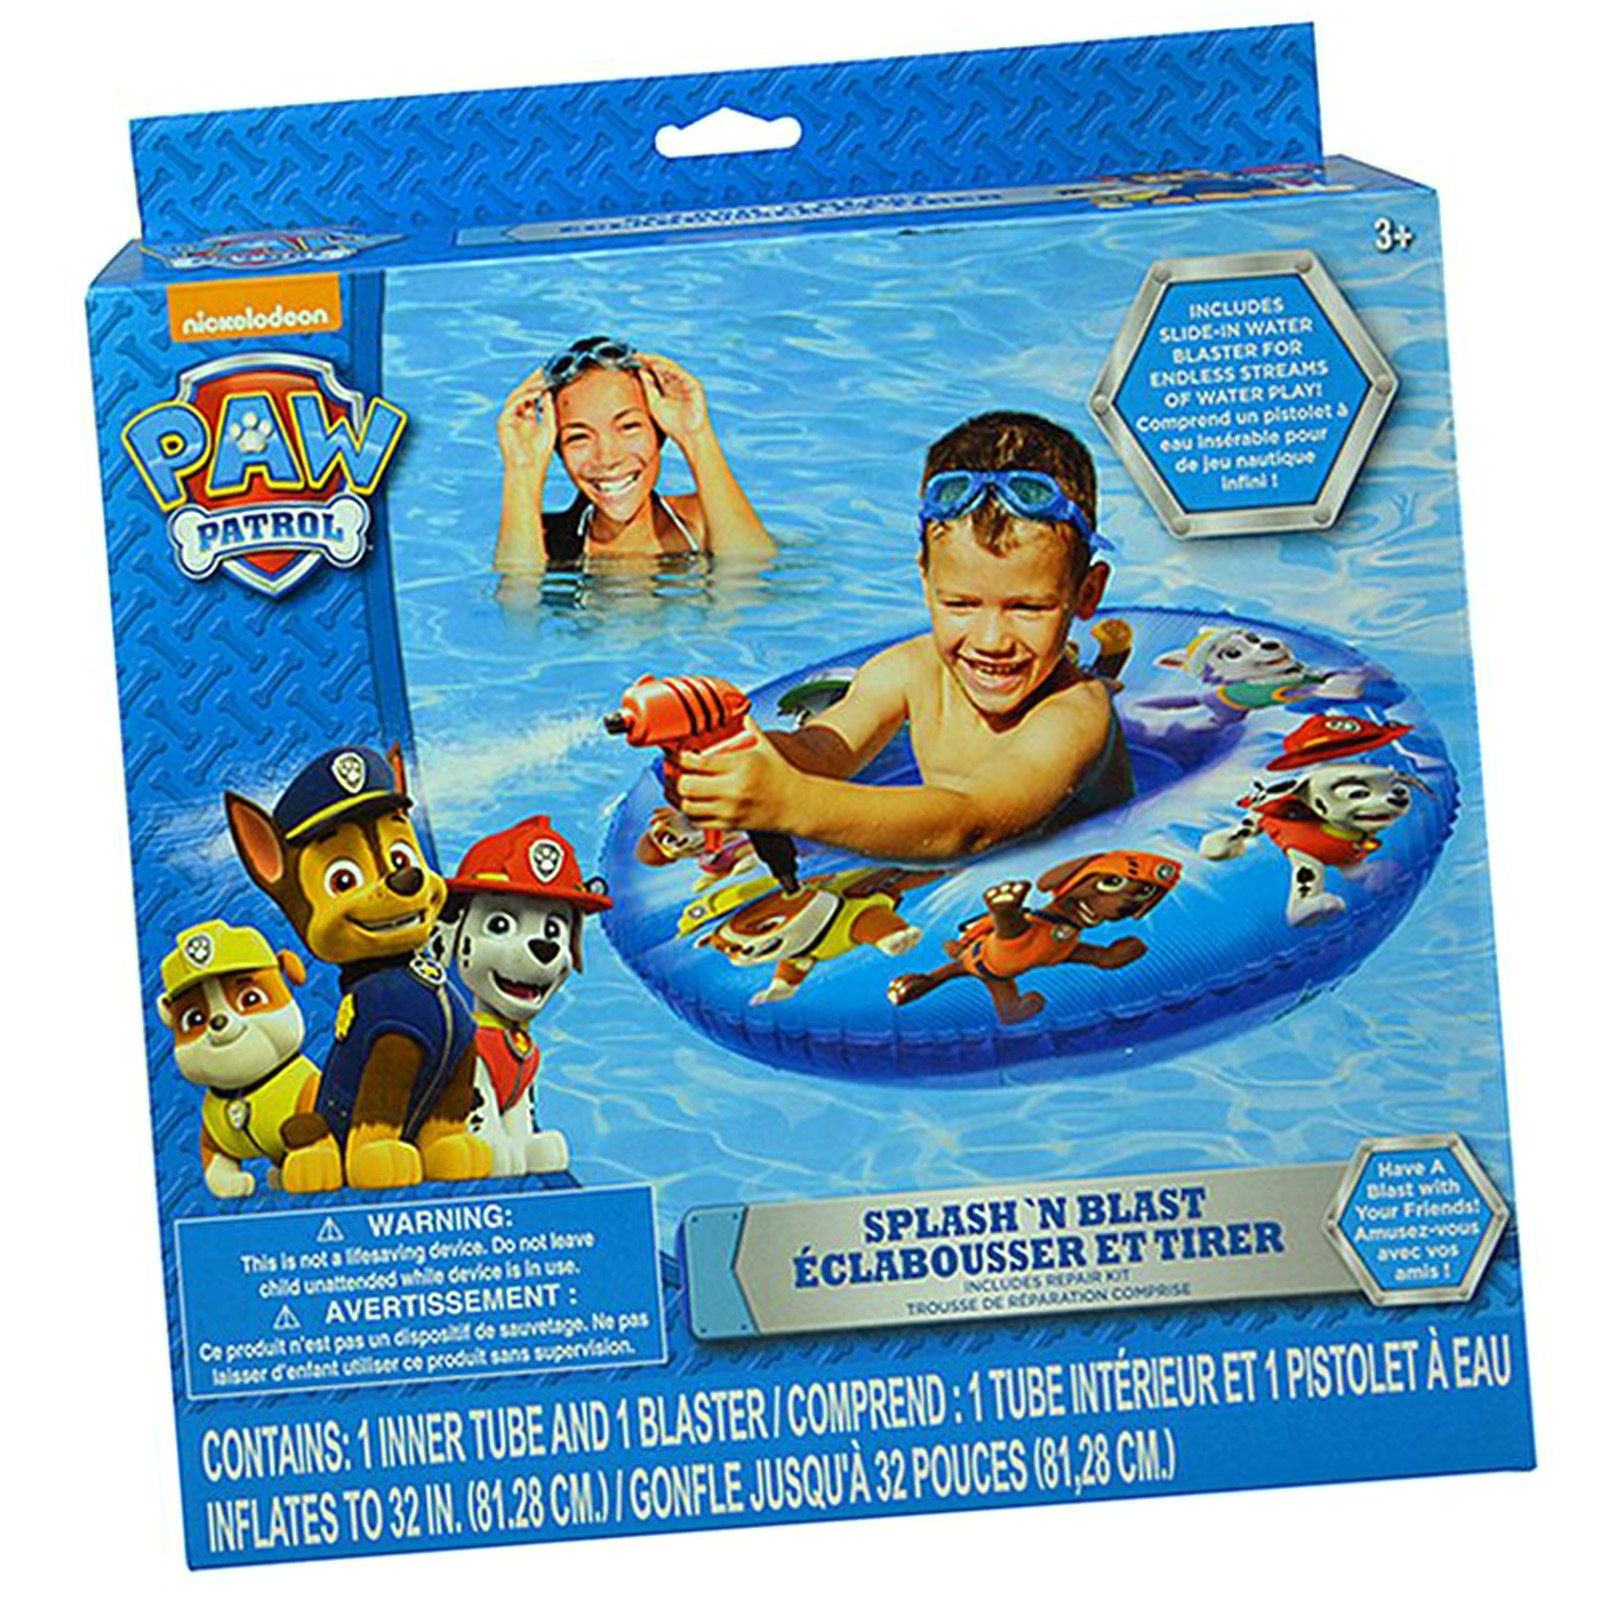 Paw Patrol Splash Blast Swim Ring Squirt Gun Water Cannon